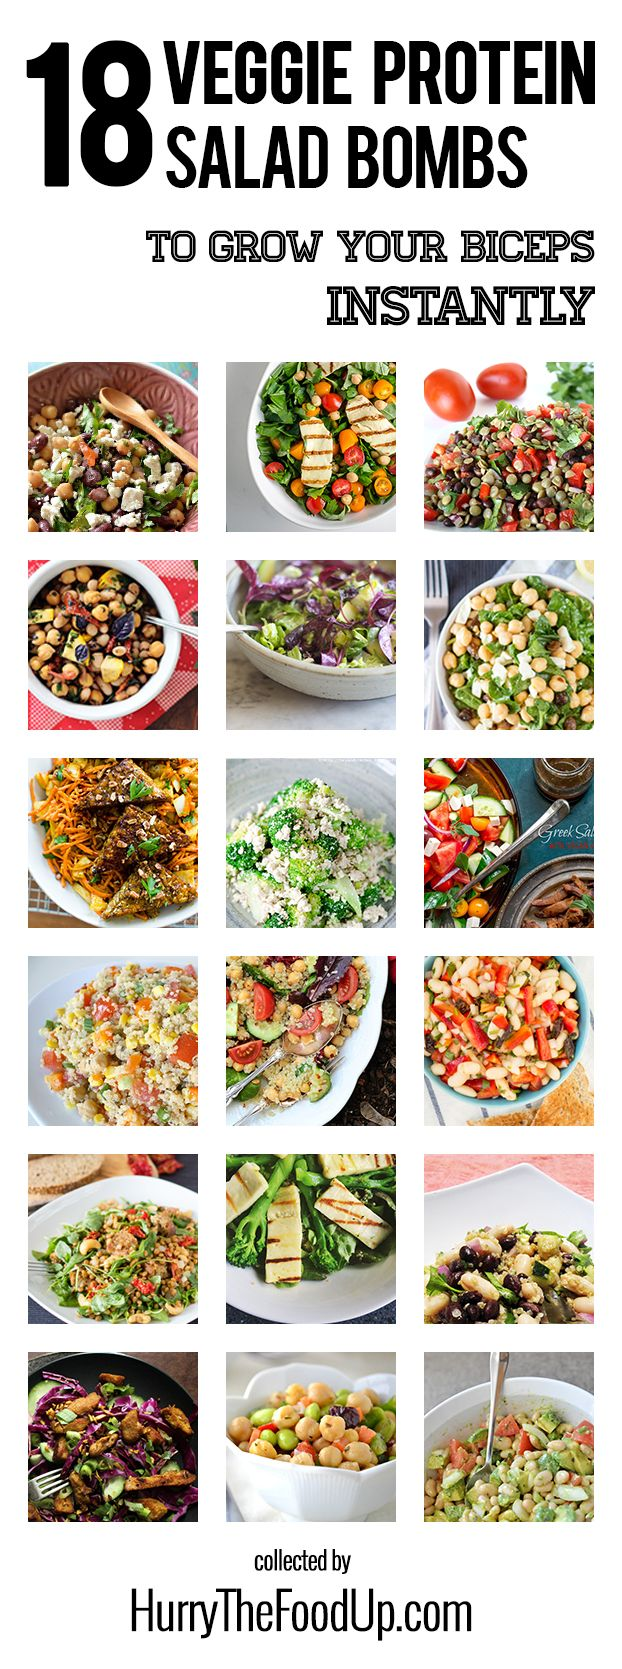 18 Vegan and Vegetarian High Protein Salads